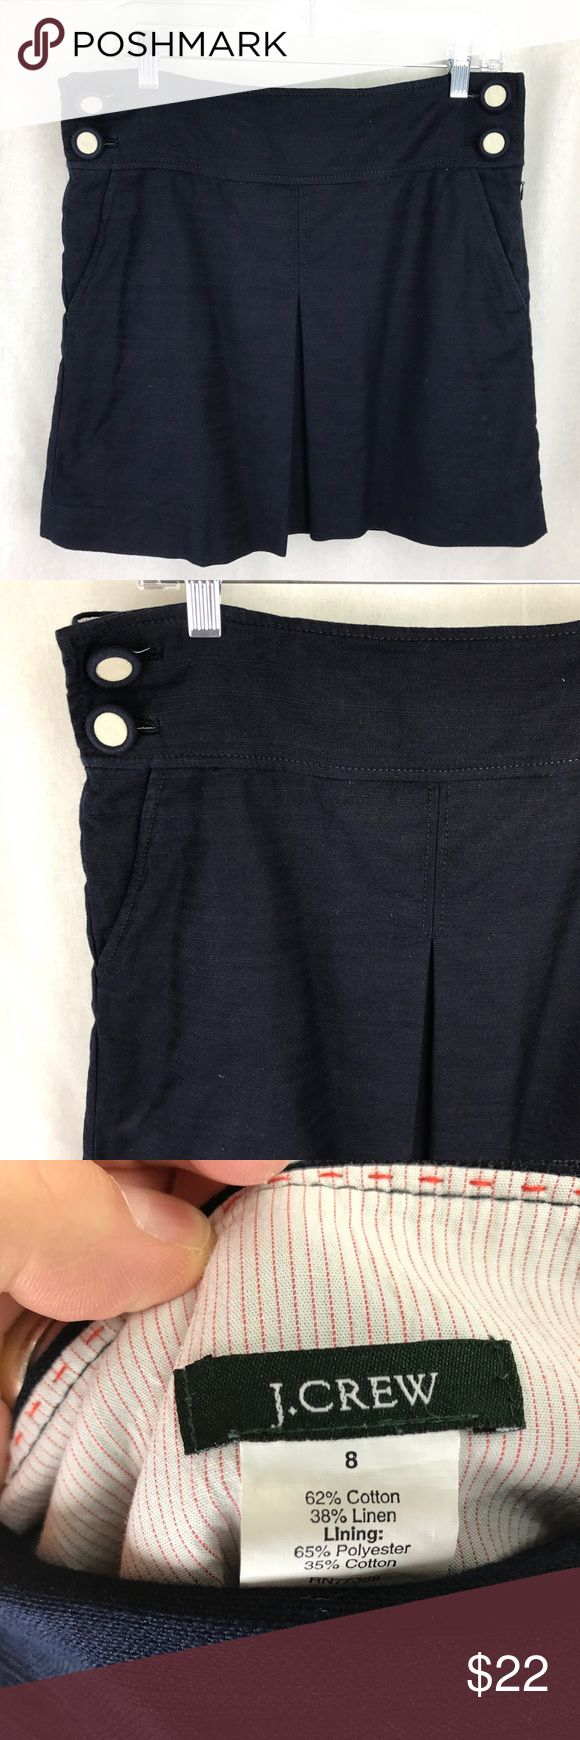 "J.Crew Women's Navy linen blend mini skirt size 8 J.Crew Women's Navy linen blend mini skirt size 8. Fully lined.  Lovely covered buttons, pockets and pleated front.  Measure approx: waist hip to hip 16 1/2"" and overall length 17 1/2"" All measurements are with item flat.  Comes from smoke free and pet free home. J. Crew Skirts Mini"